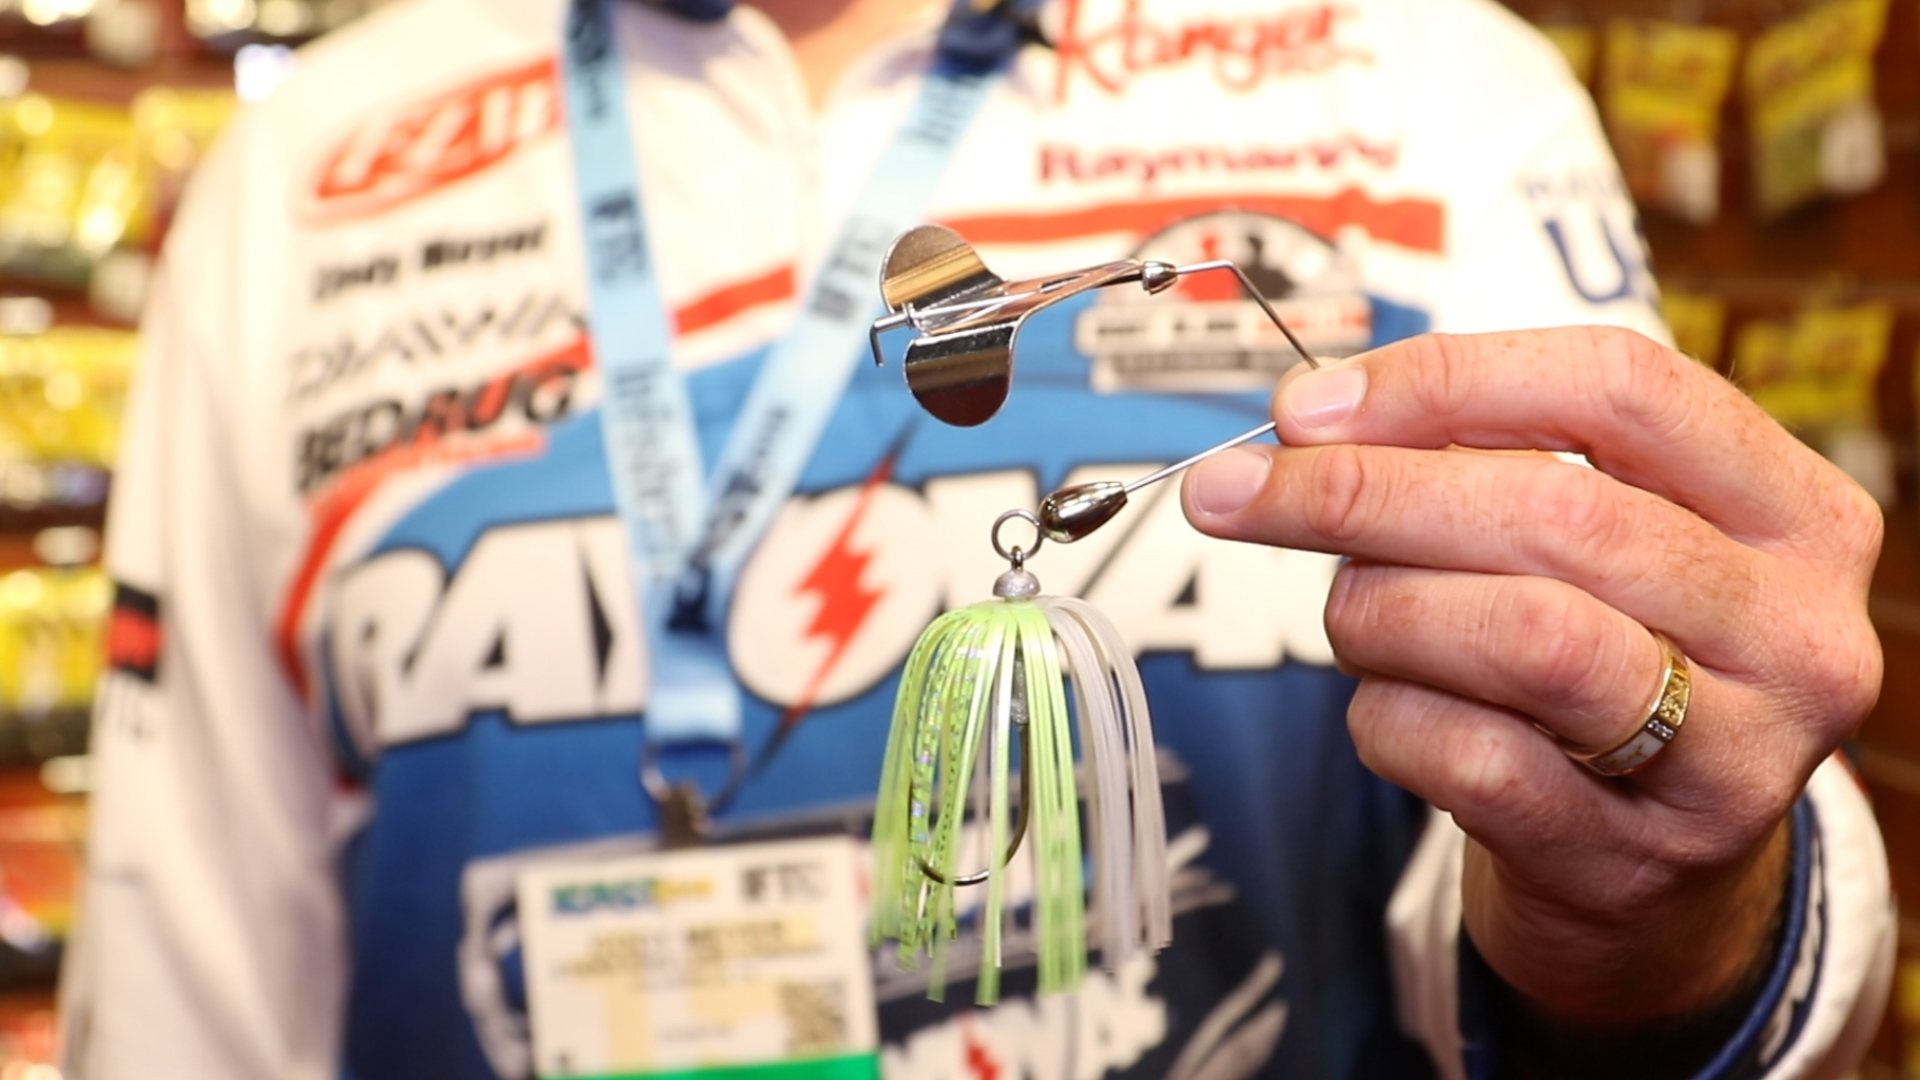 ICAST 2015 - Cody Meyer on Strike King